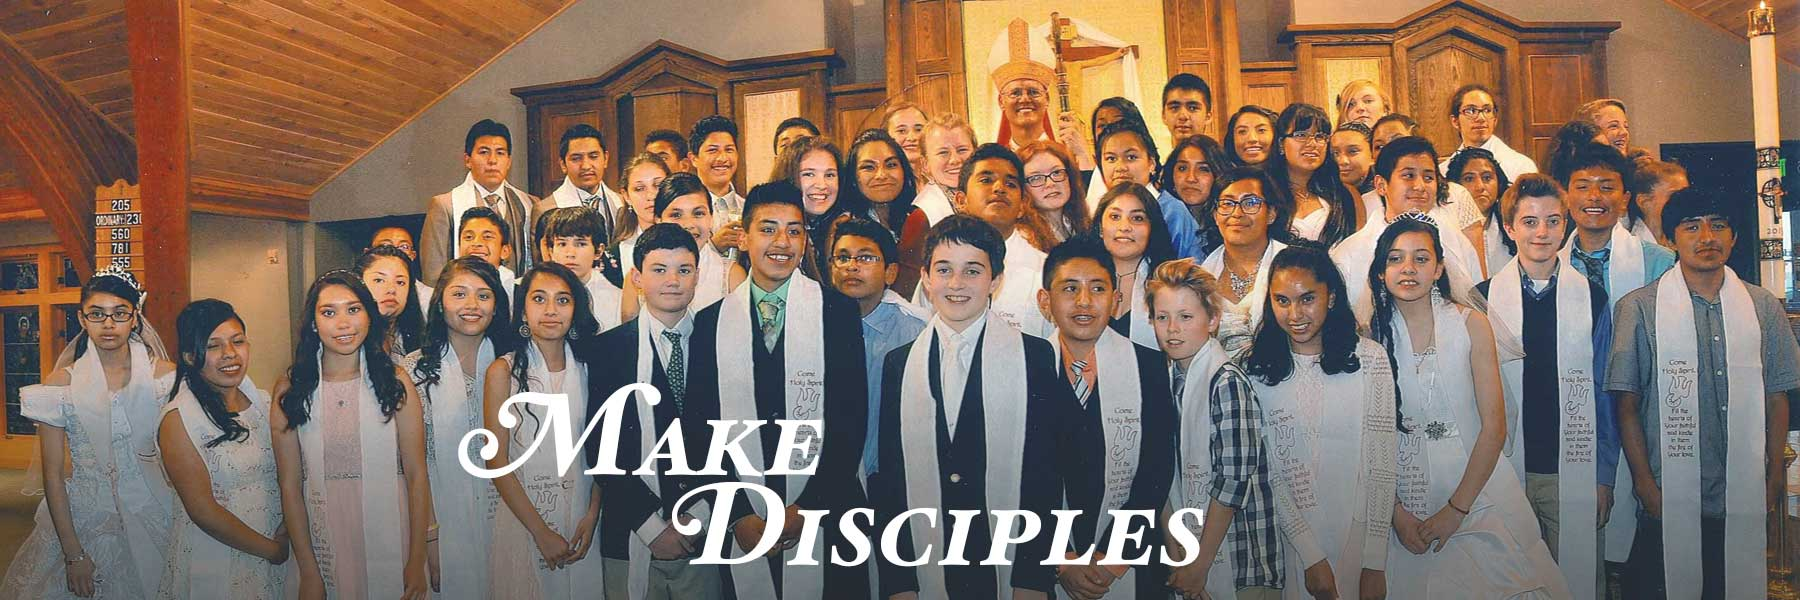 OLM_disciple_banner_homepage_edit